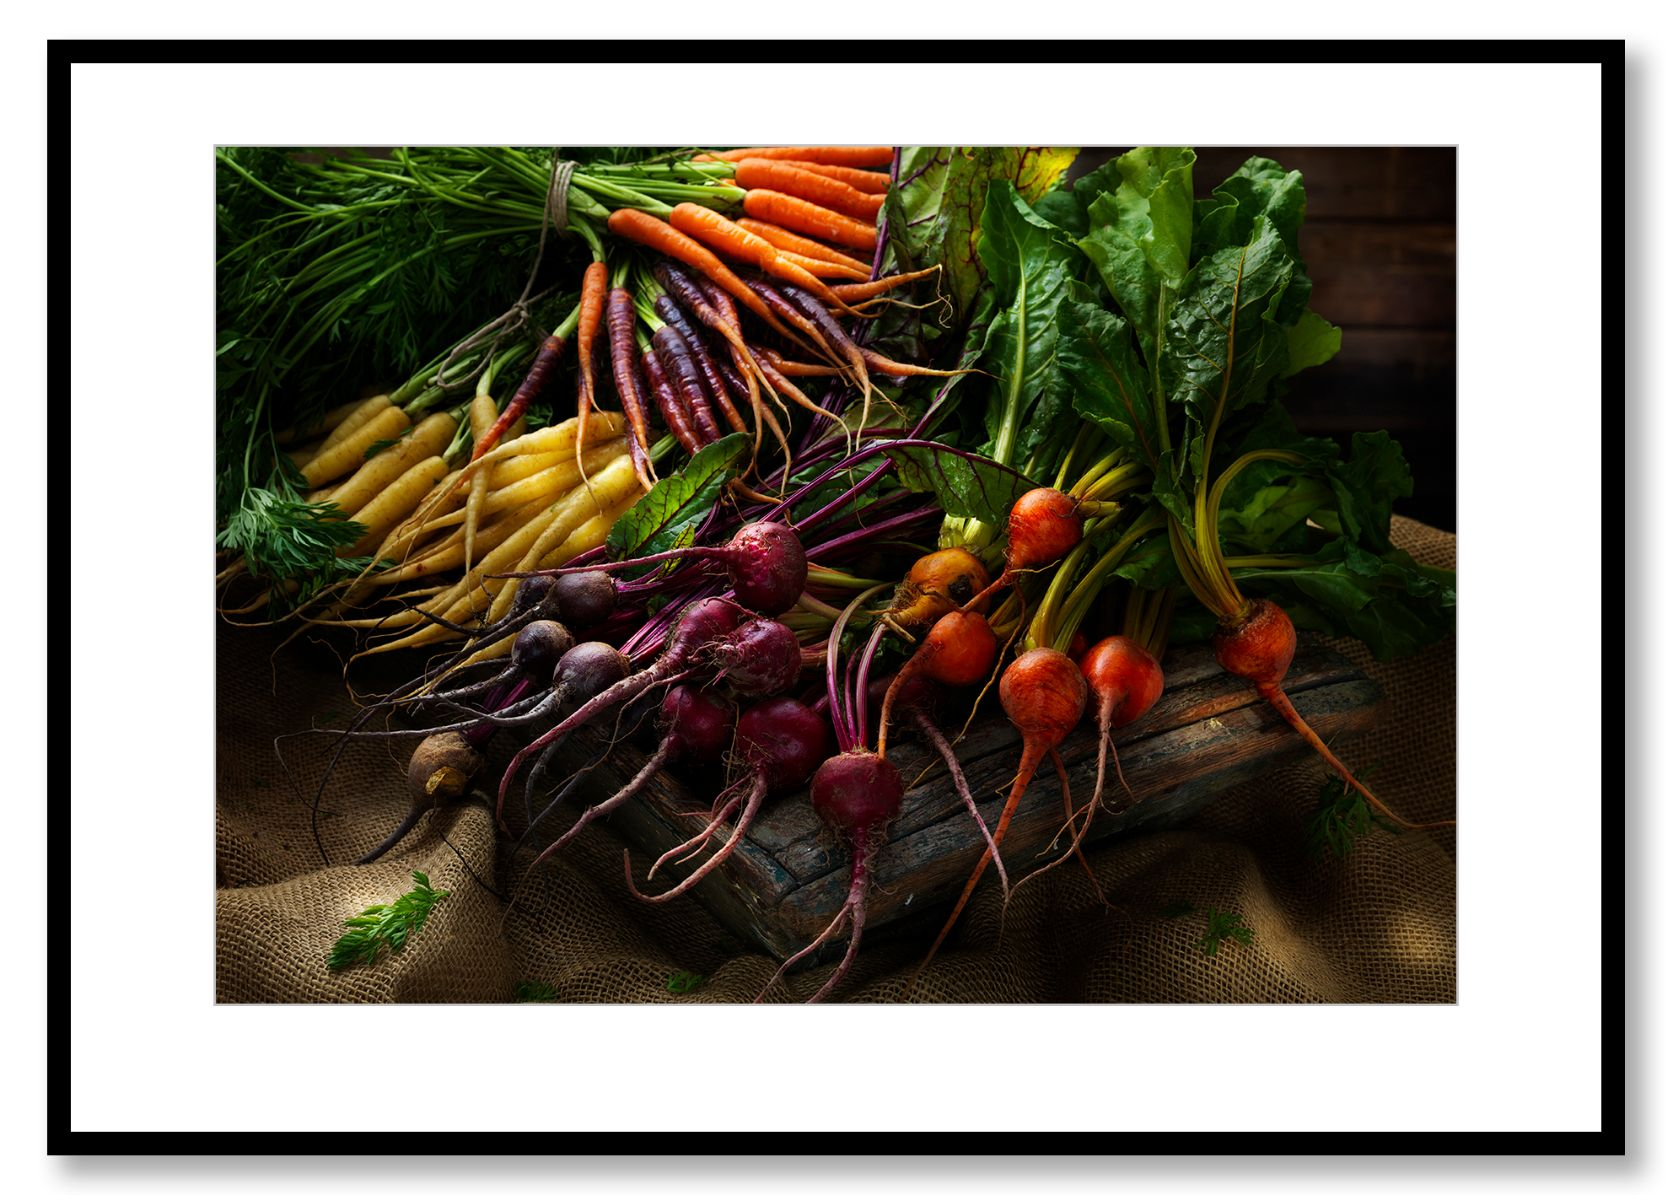 Root vegetables,  Freshly harvested. Food Art. Prints for sale. Photo by Fredrik Rege